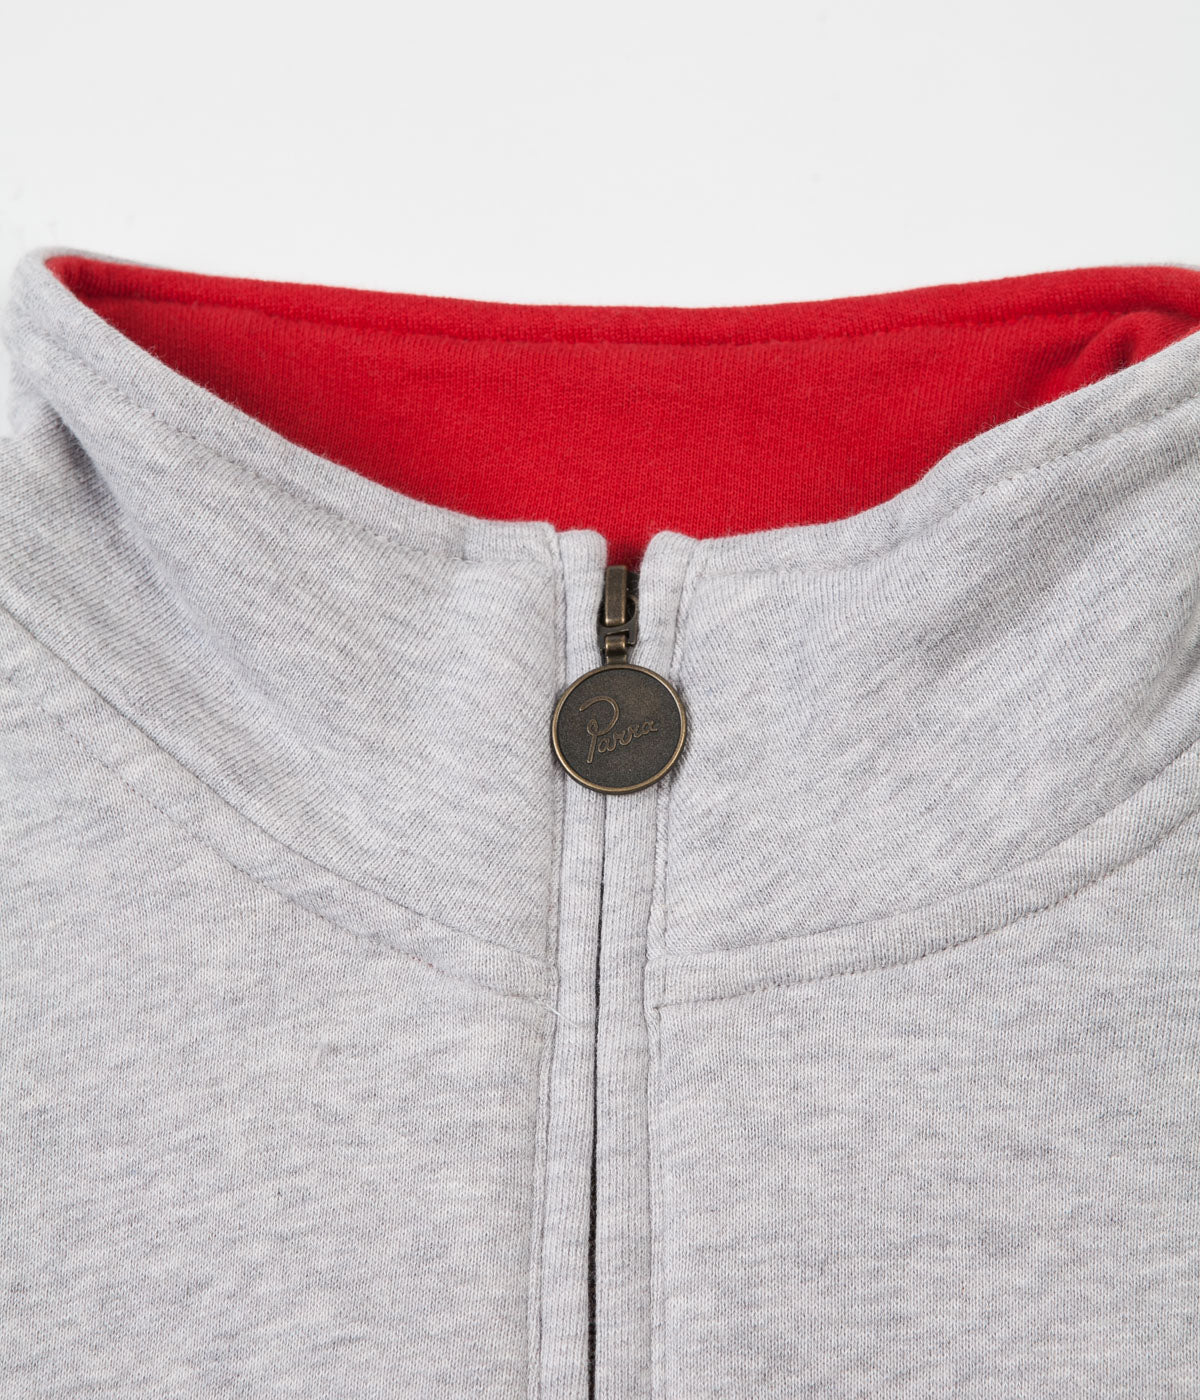 by Parra Sponsored Quarter Zip Sweatshirt - Ash Grey